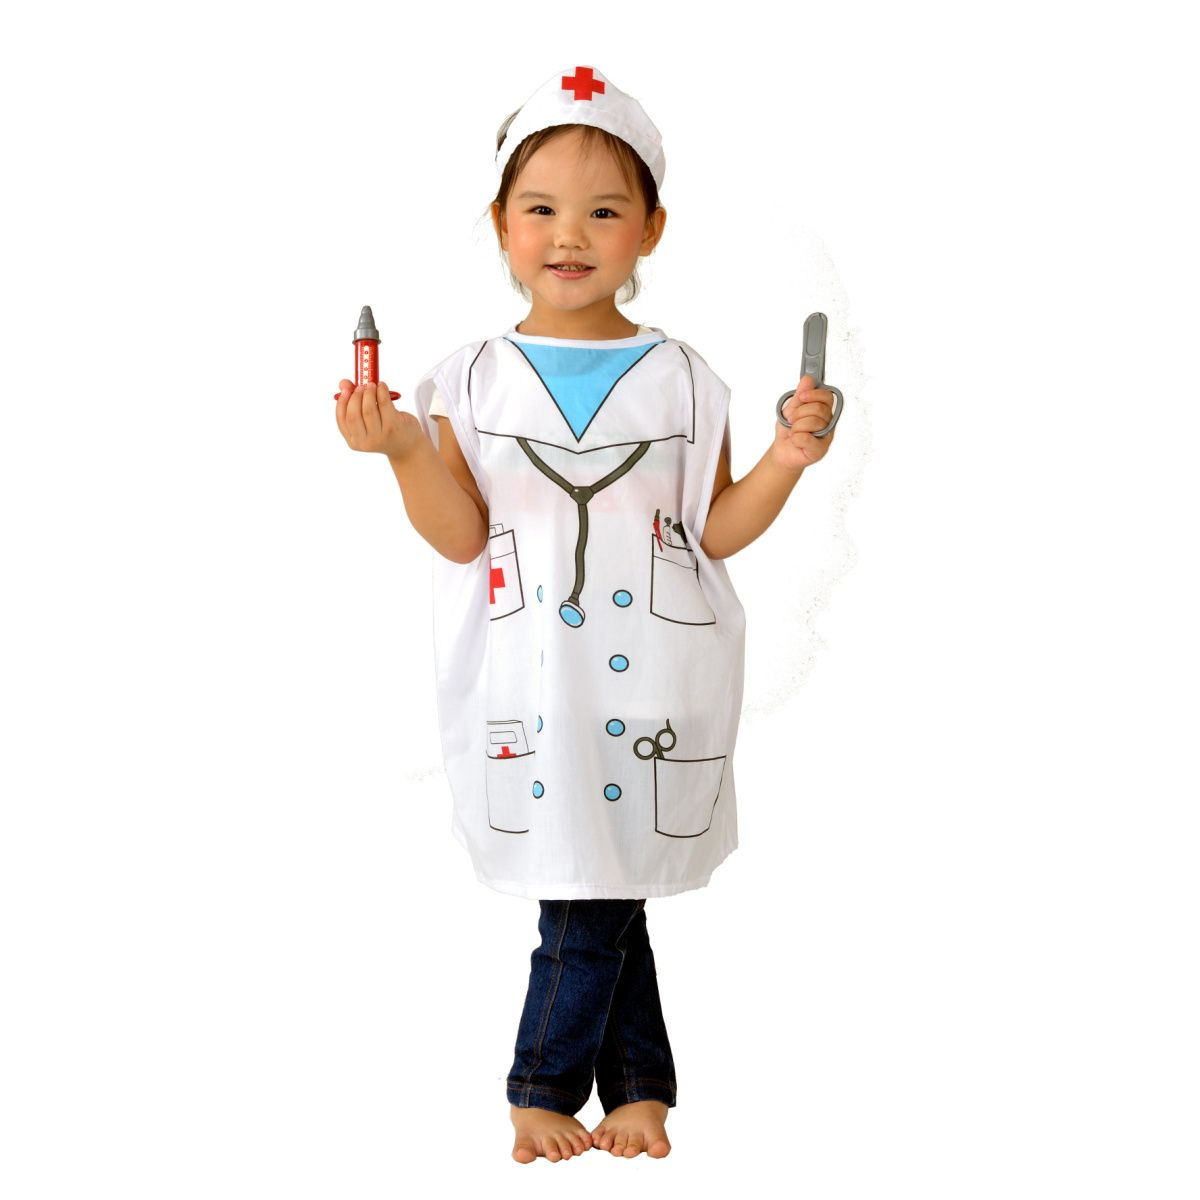 kid doctor halloween costume be funwhat do you think of that idea - Kids Doctor Halloween Costume